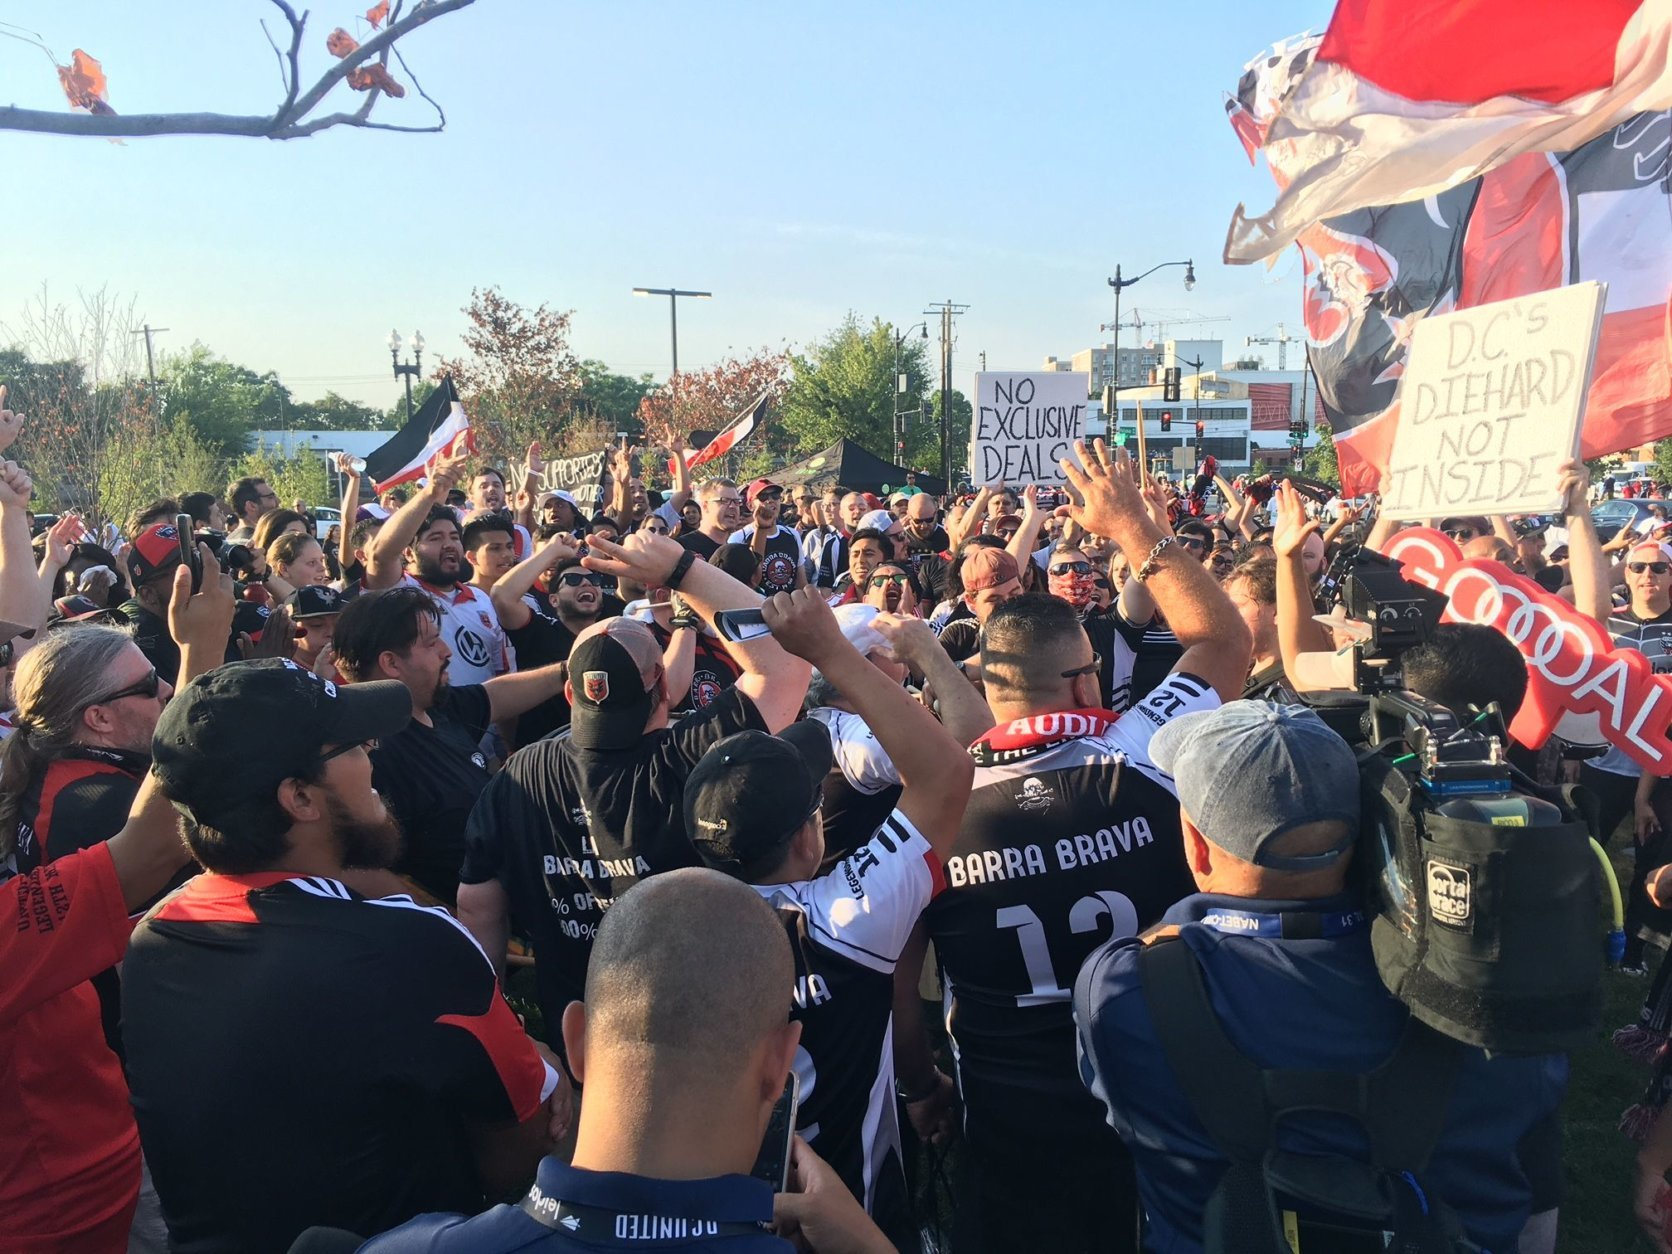 Members of La Barra Brava and District Ultras supporters groups protest outside the stadium before the game. (WTOP/Noah Frank)